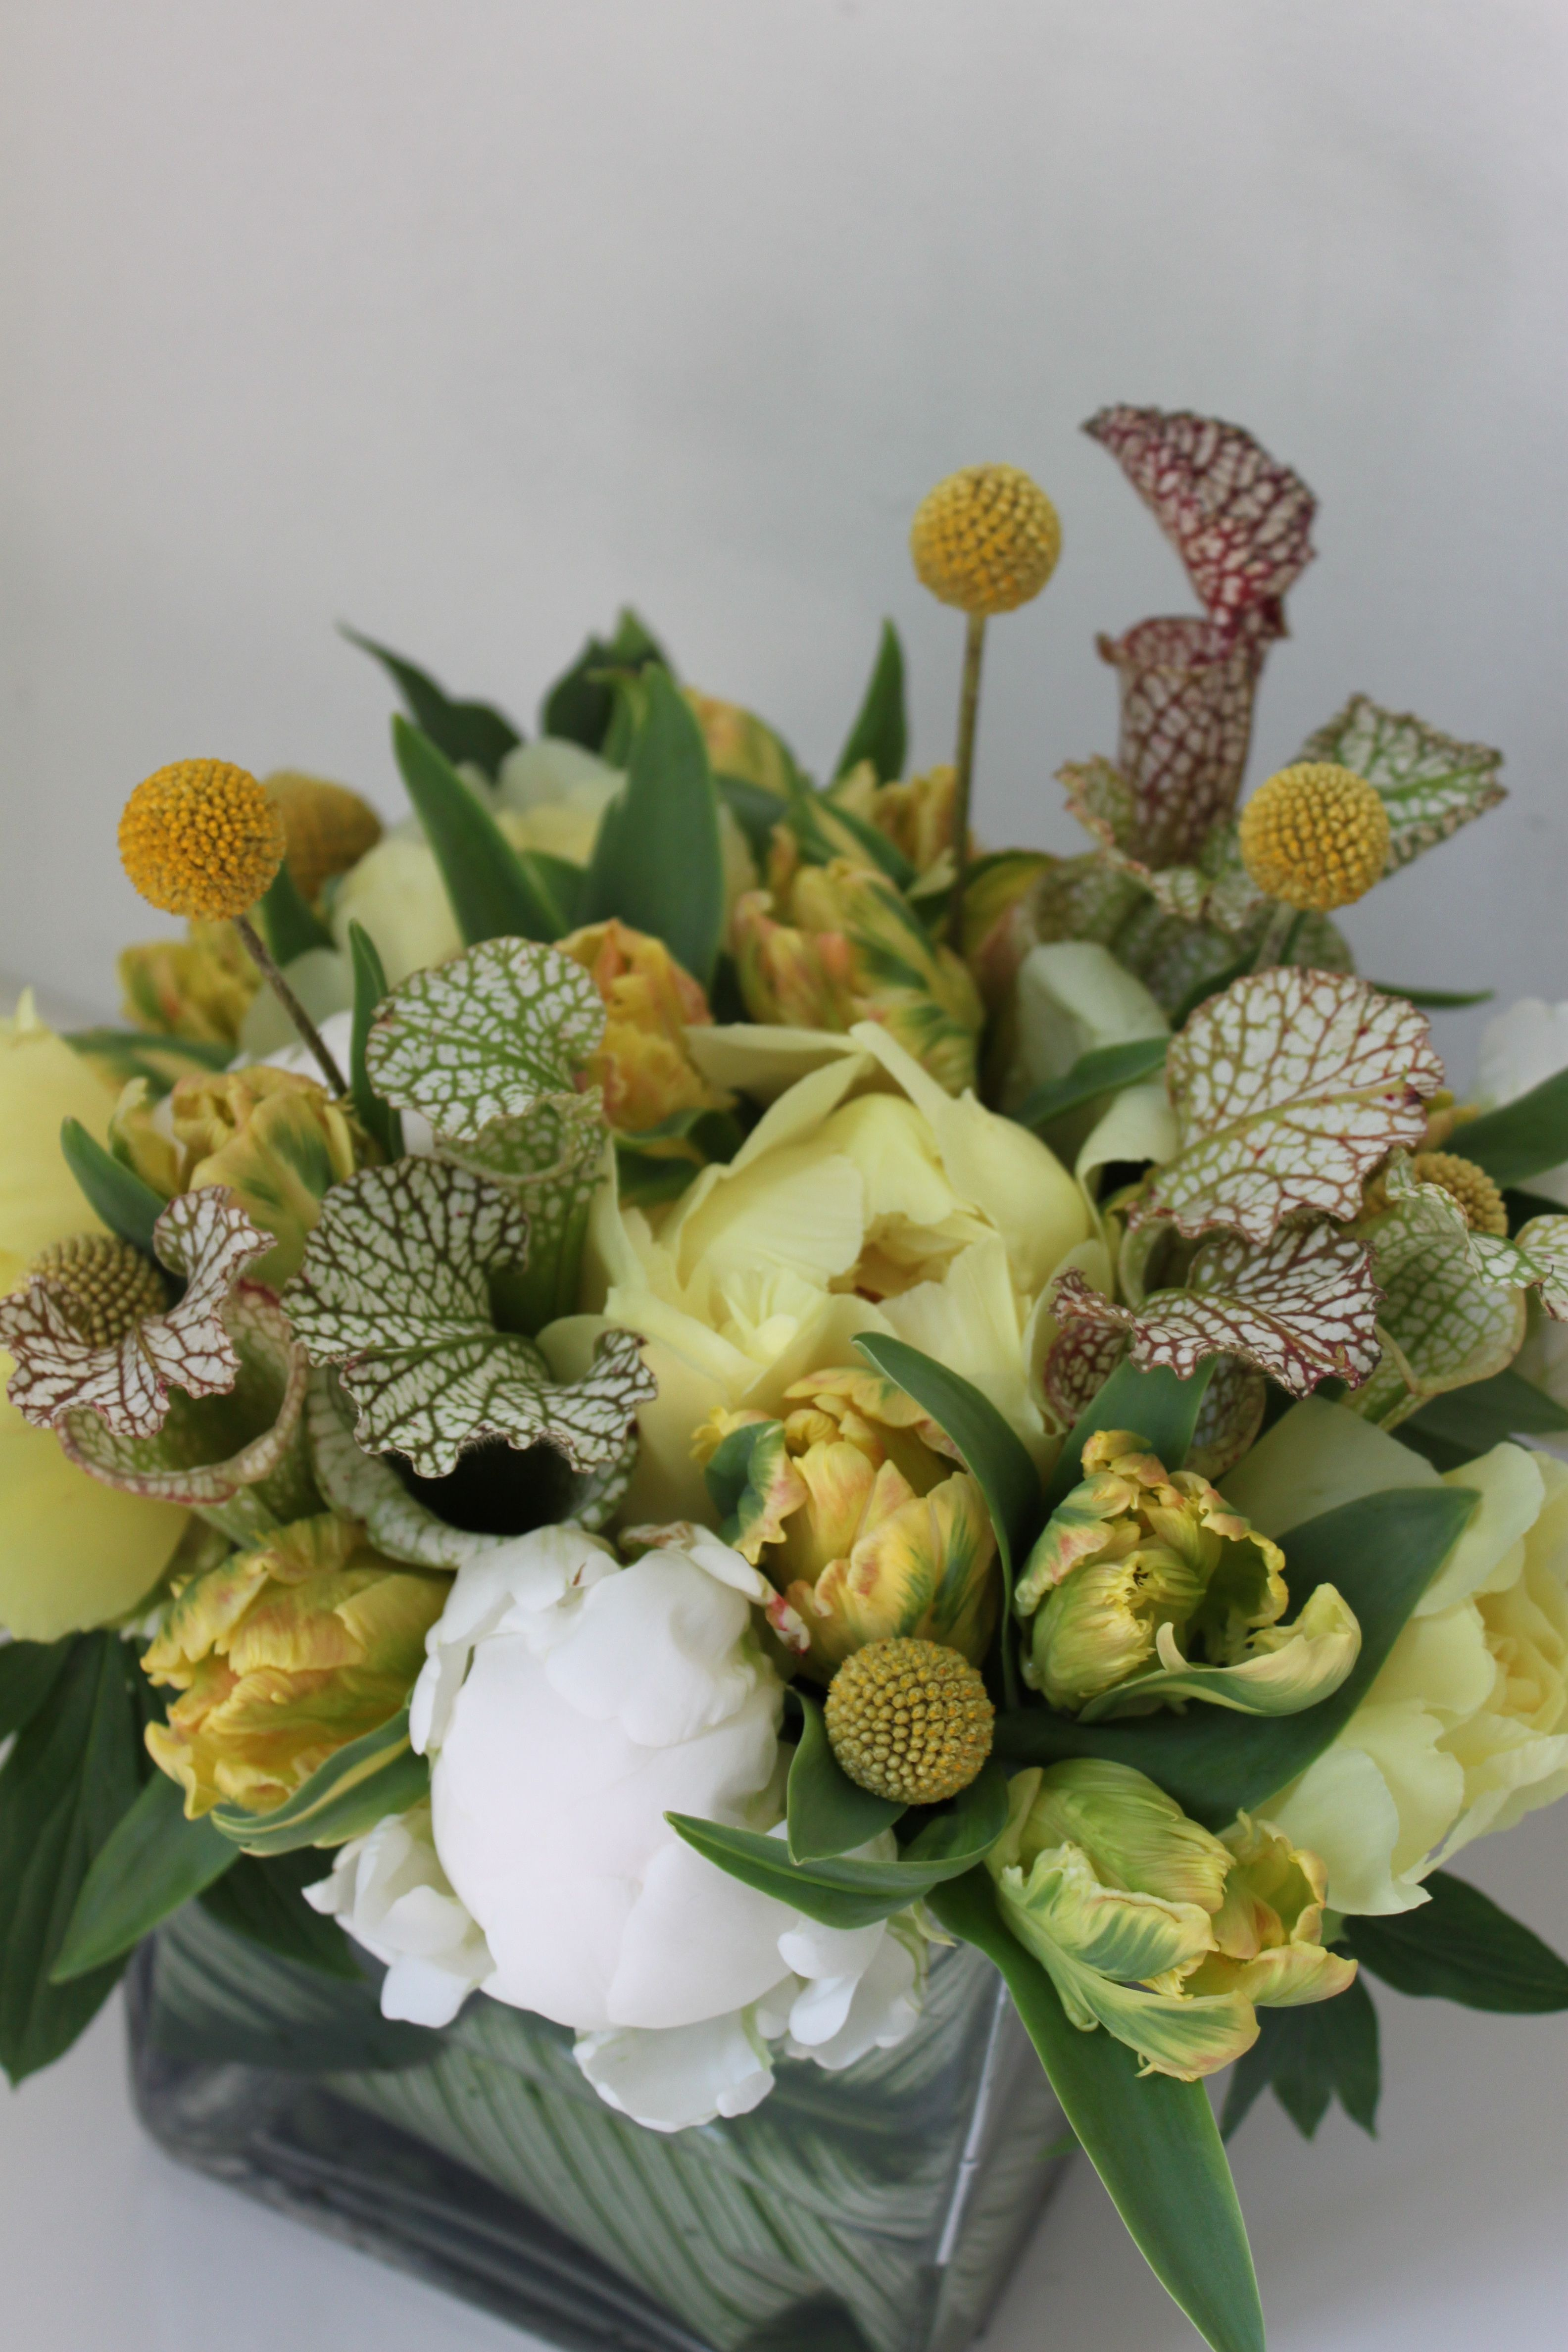 yellow tree peony, parrot tulip, craspedia, white peony, sarracenia pitcher plant wedding flower bouquet, bridal bouquet, wedding flowers, add pic source on comment and we will update it. www.myfloweraffair.com can create this beautiful wedding flower look.